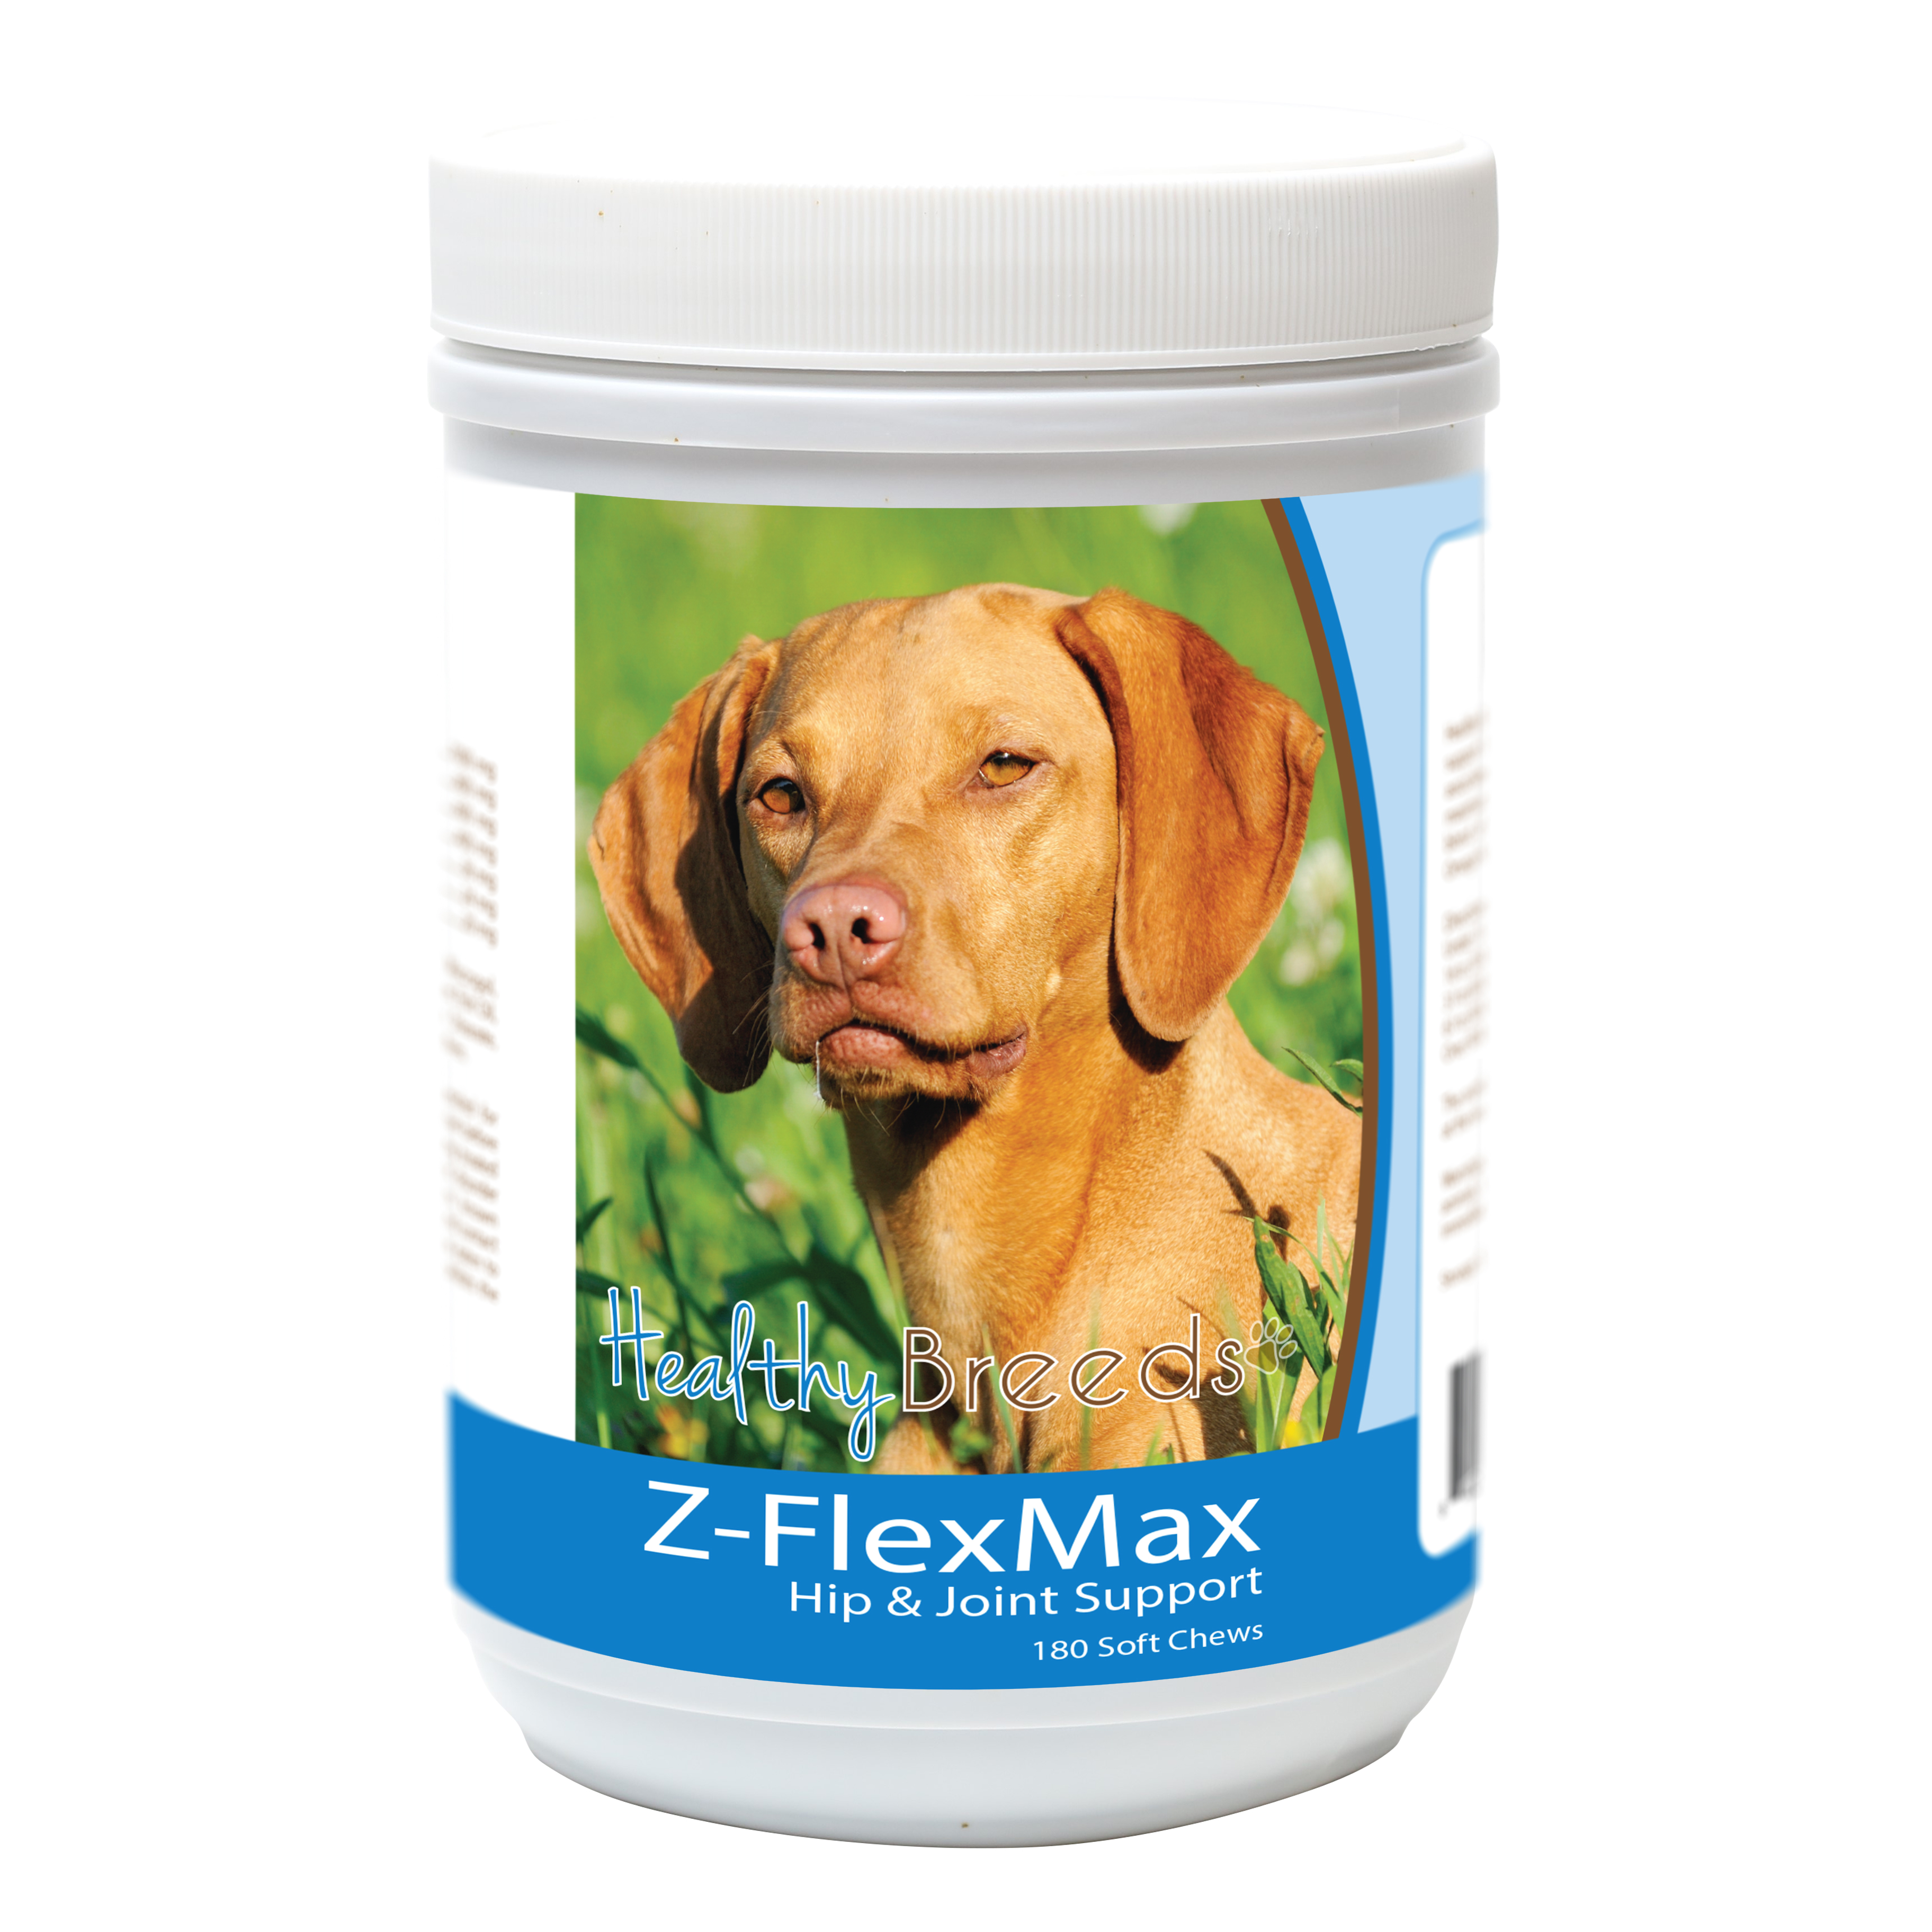 Healthy Breeds Vizsla Z-Flex Max Dog Hip and Joint Support 180 Count